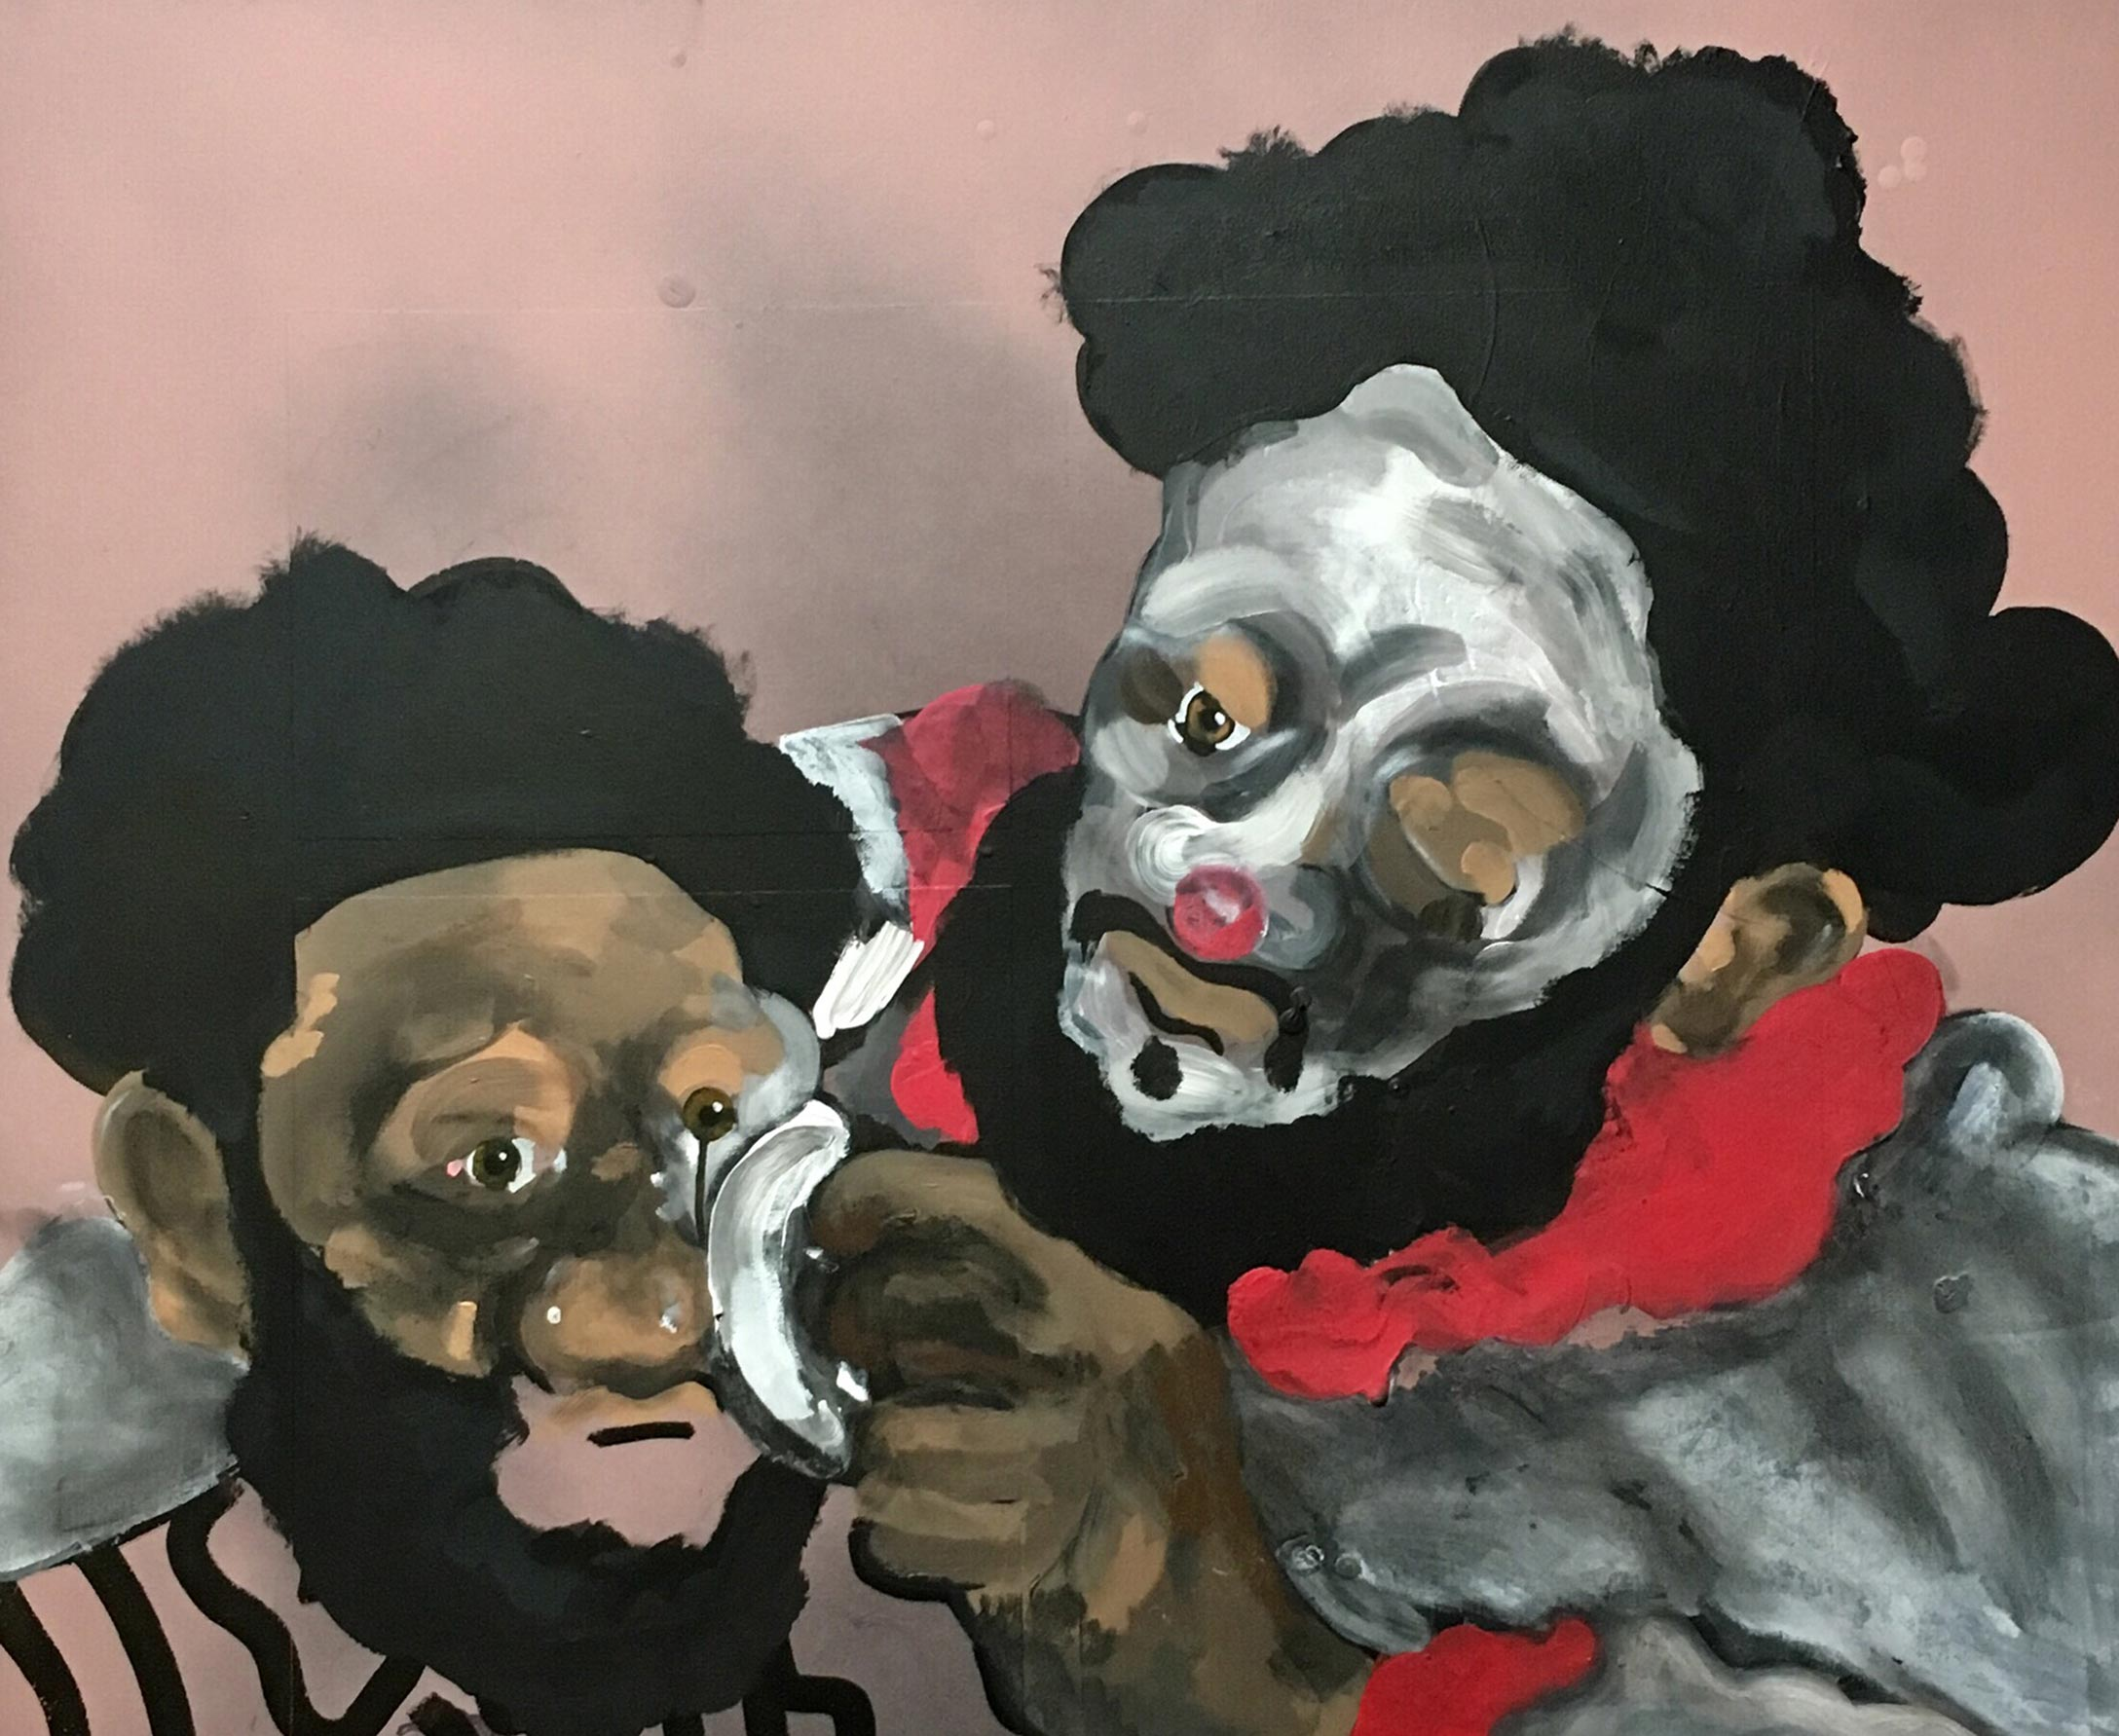 Painting of clowns wiping off or putting on white makeup over brown skin.